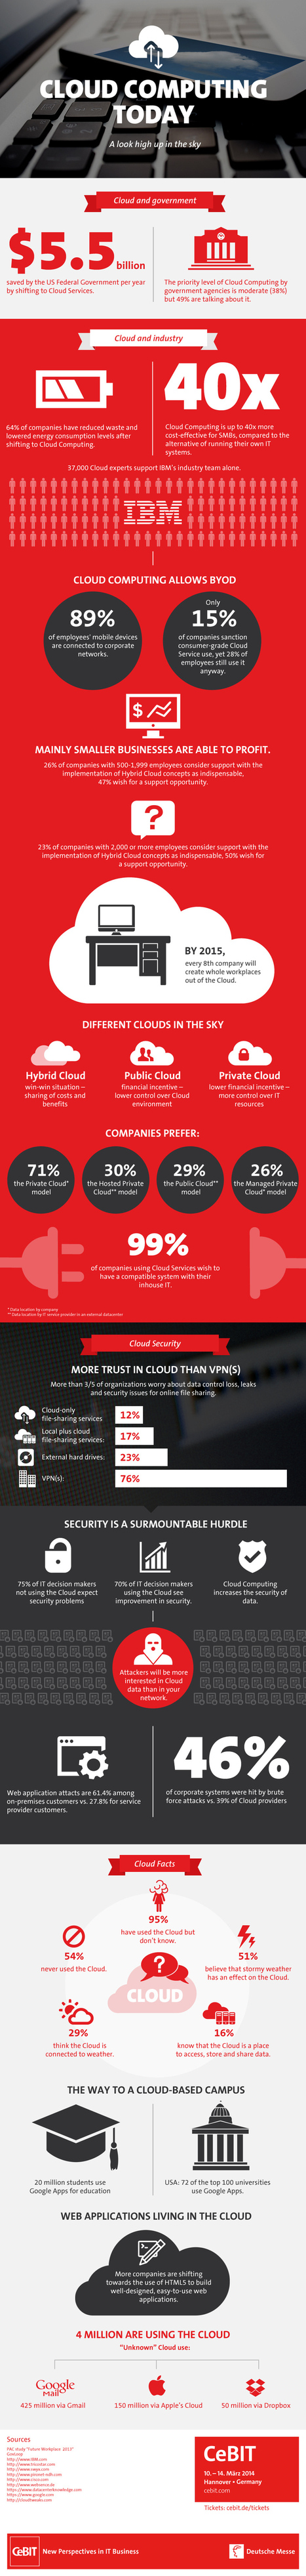 Cloud Computing 2014 And Beyond (infographic) - The MSP Hub | cloud | Scoop.it